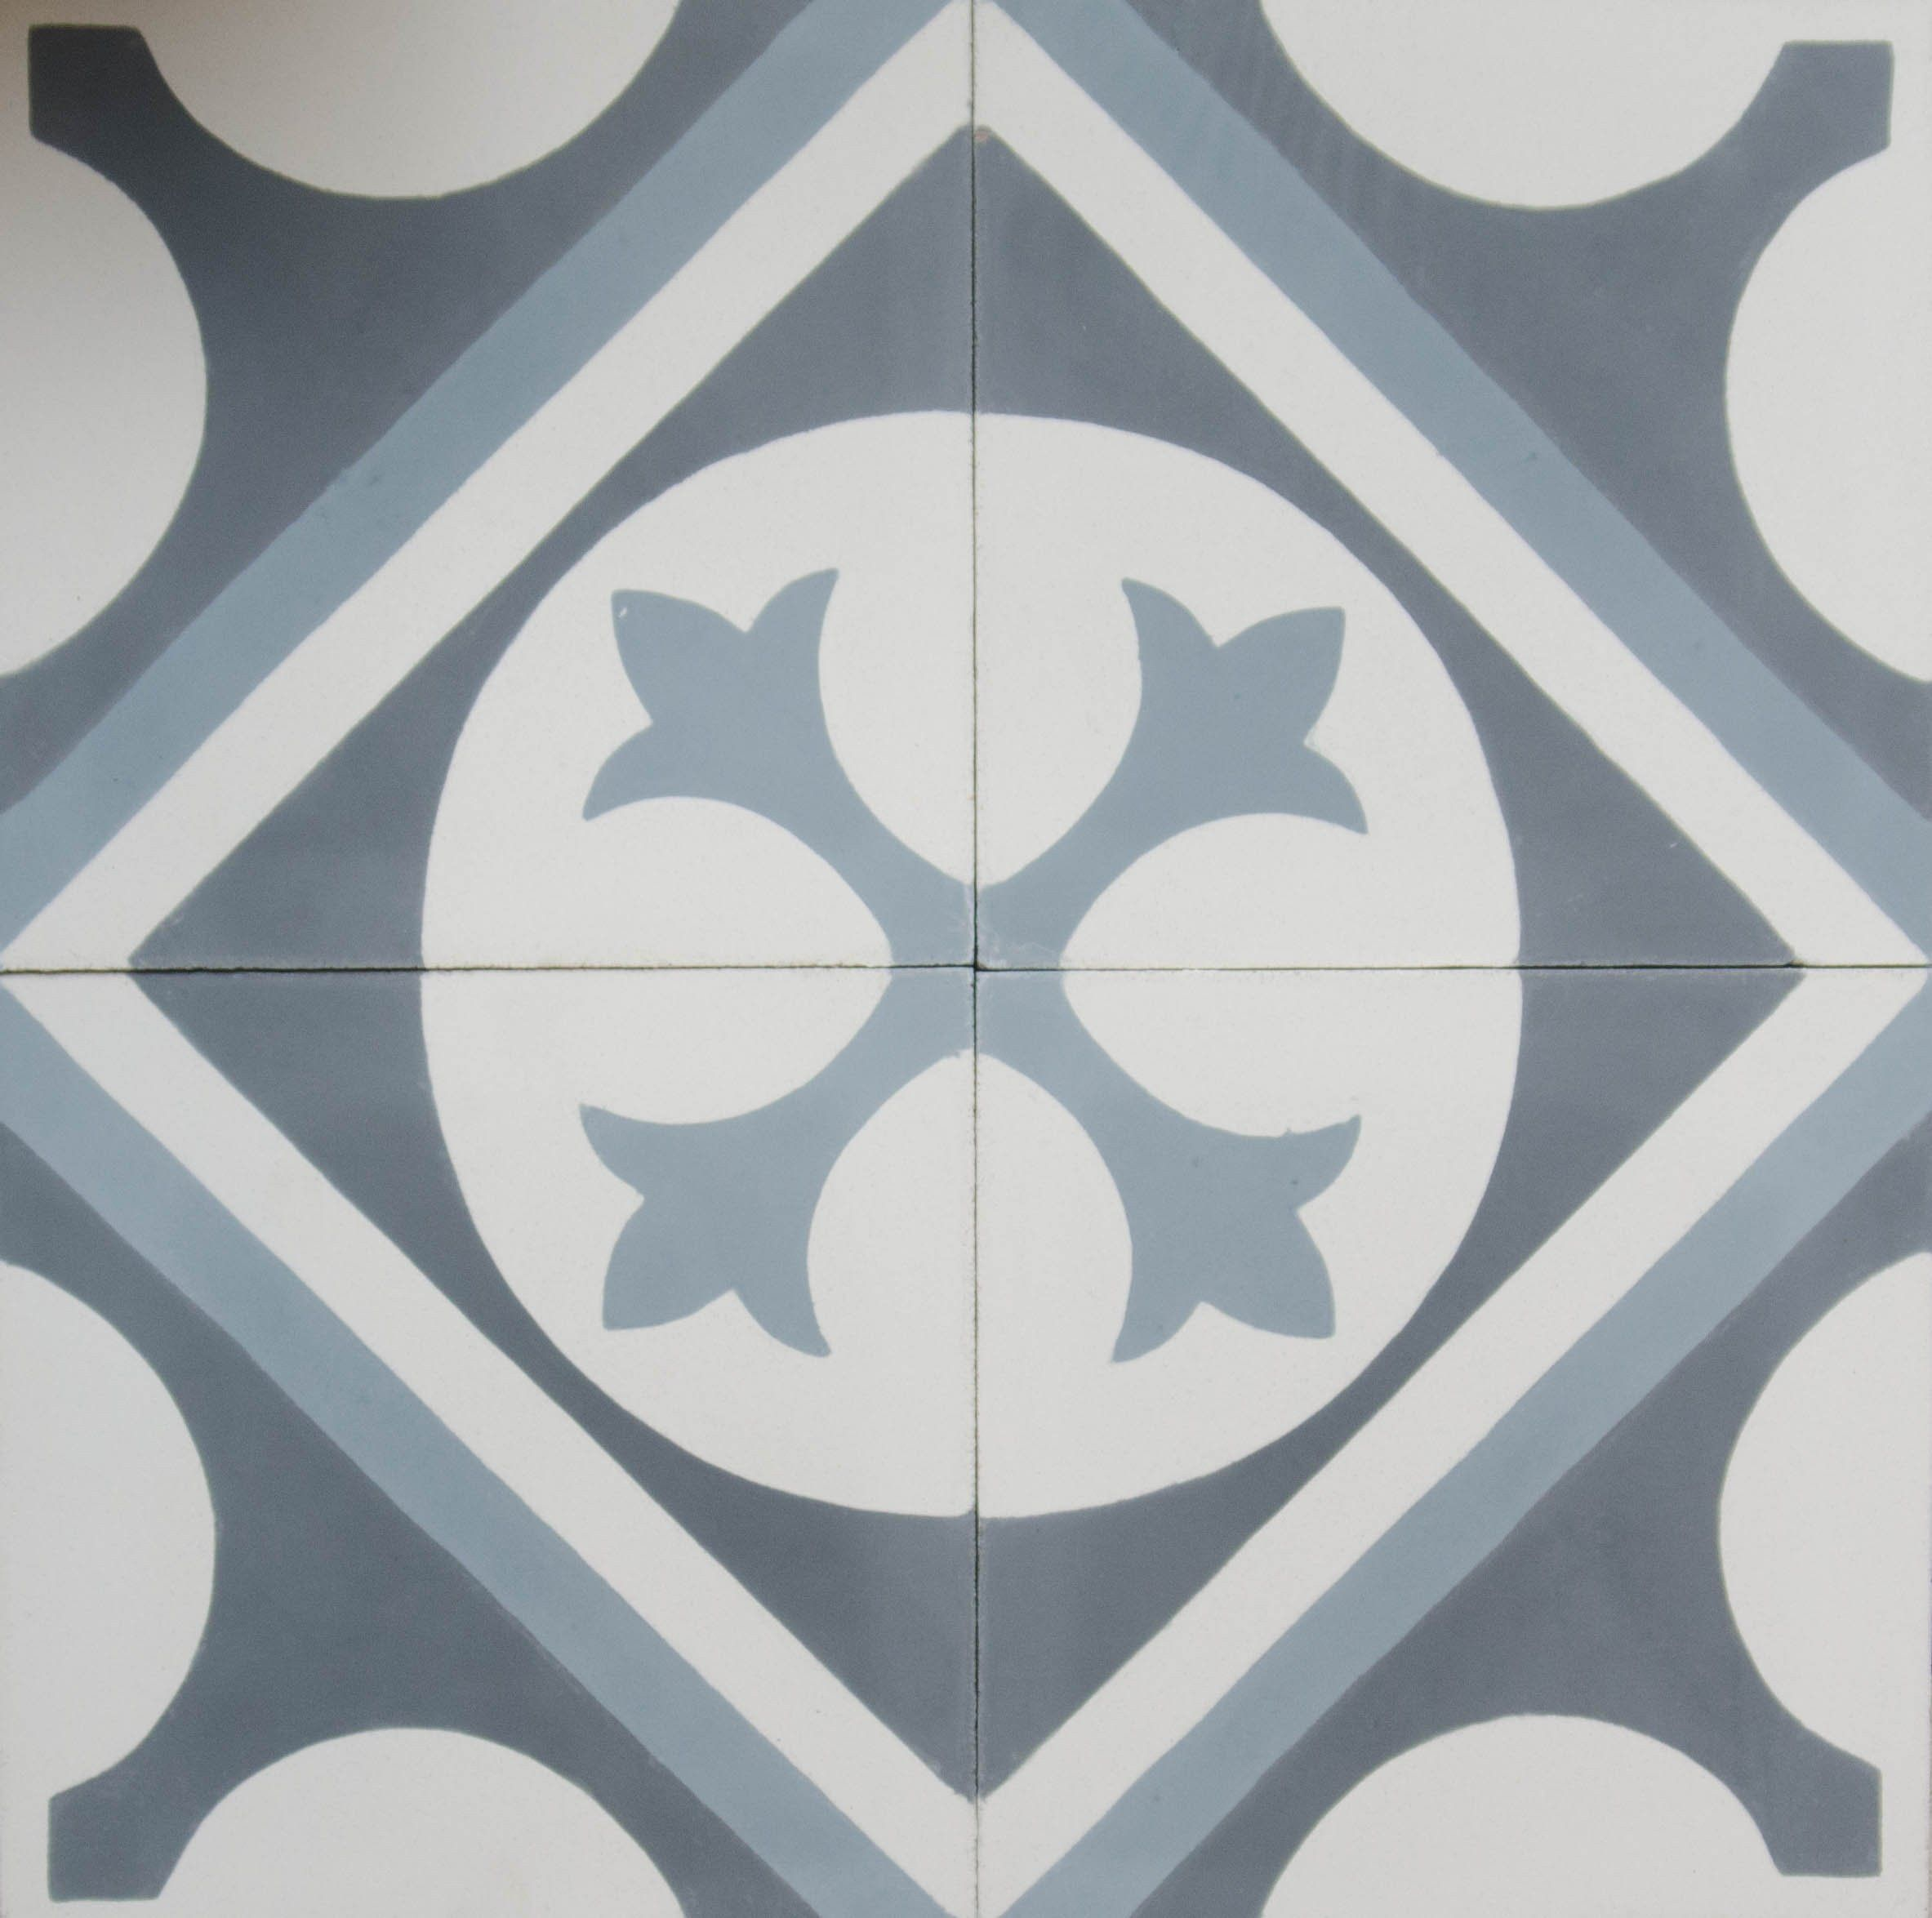 Find This Pin And More On Patterned Tiles